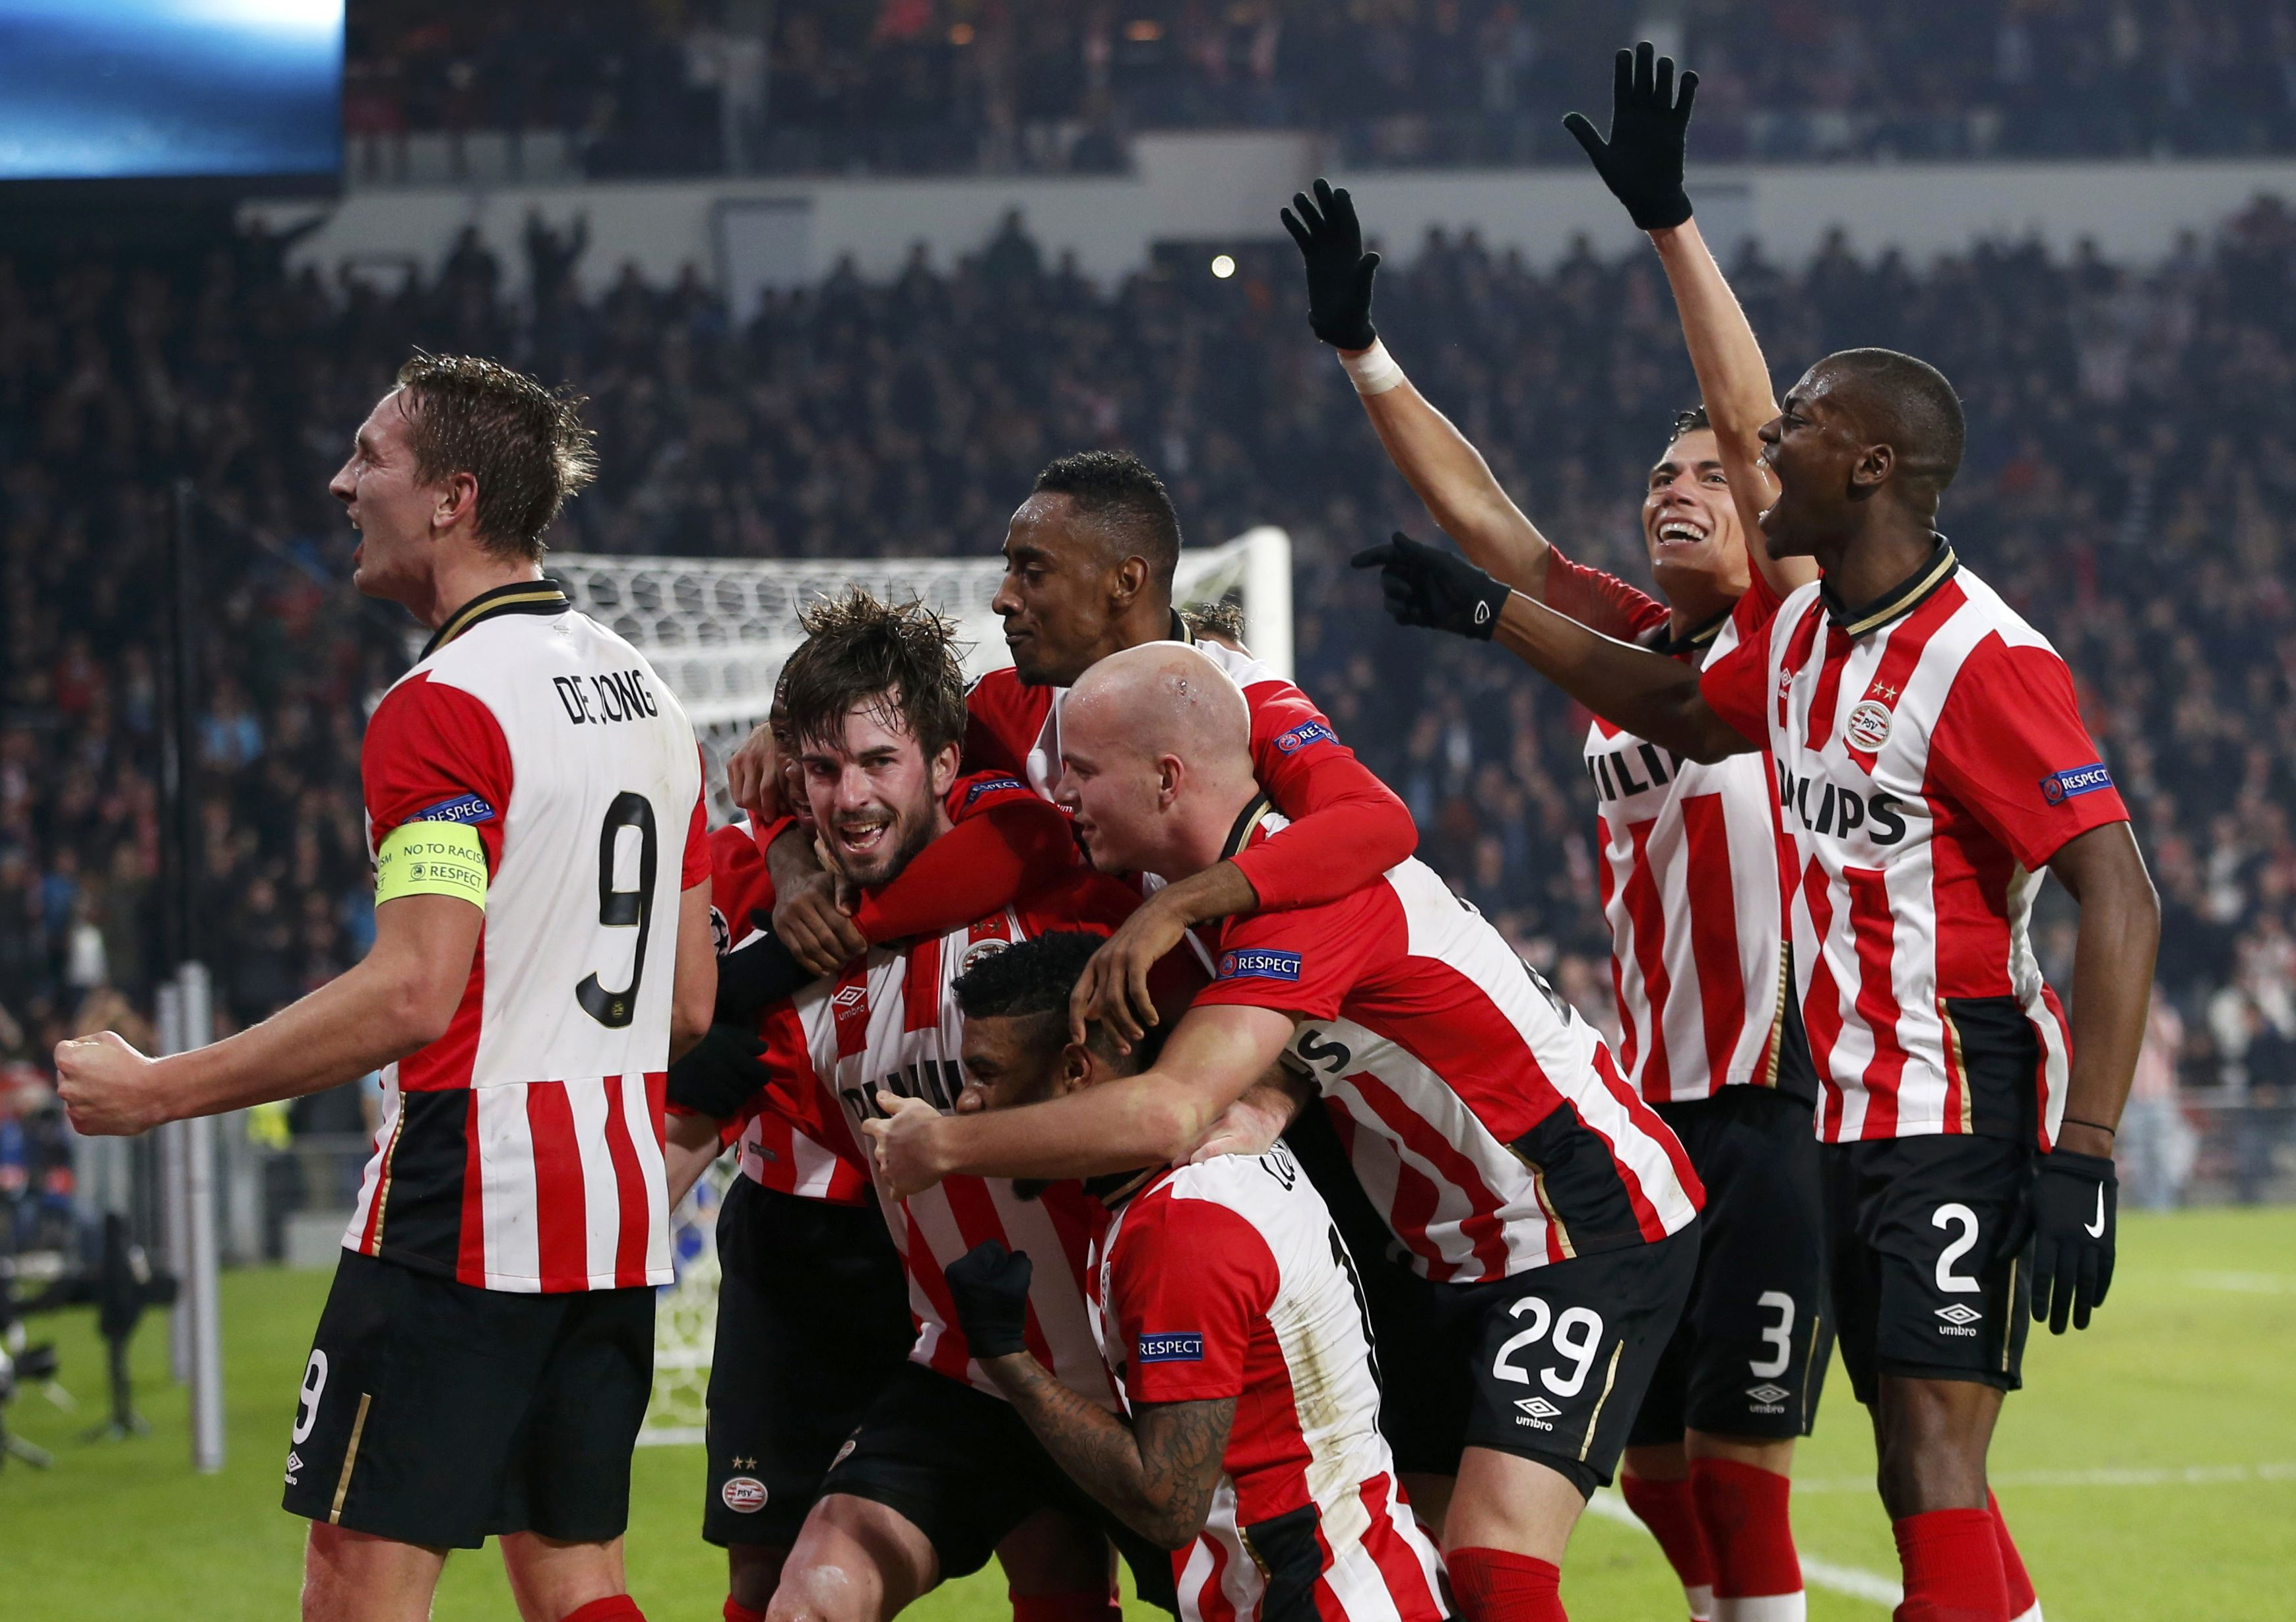 PSV Eindhoven's Davy Propper (2nd L) celebrates with team mates after scoring his side's winning goal. Photo: Reuters